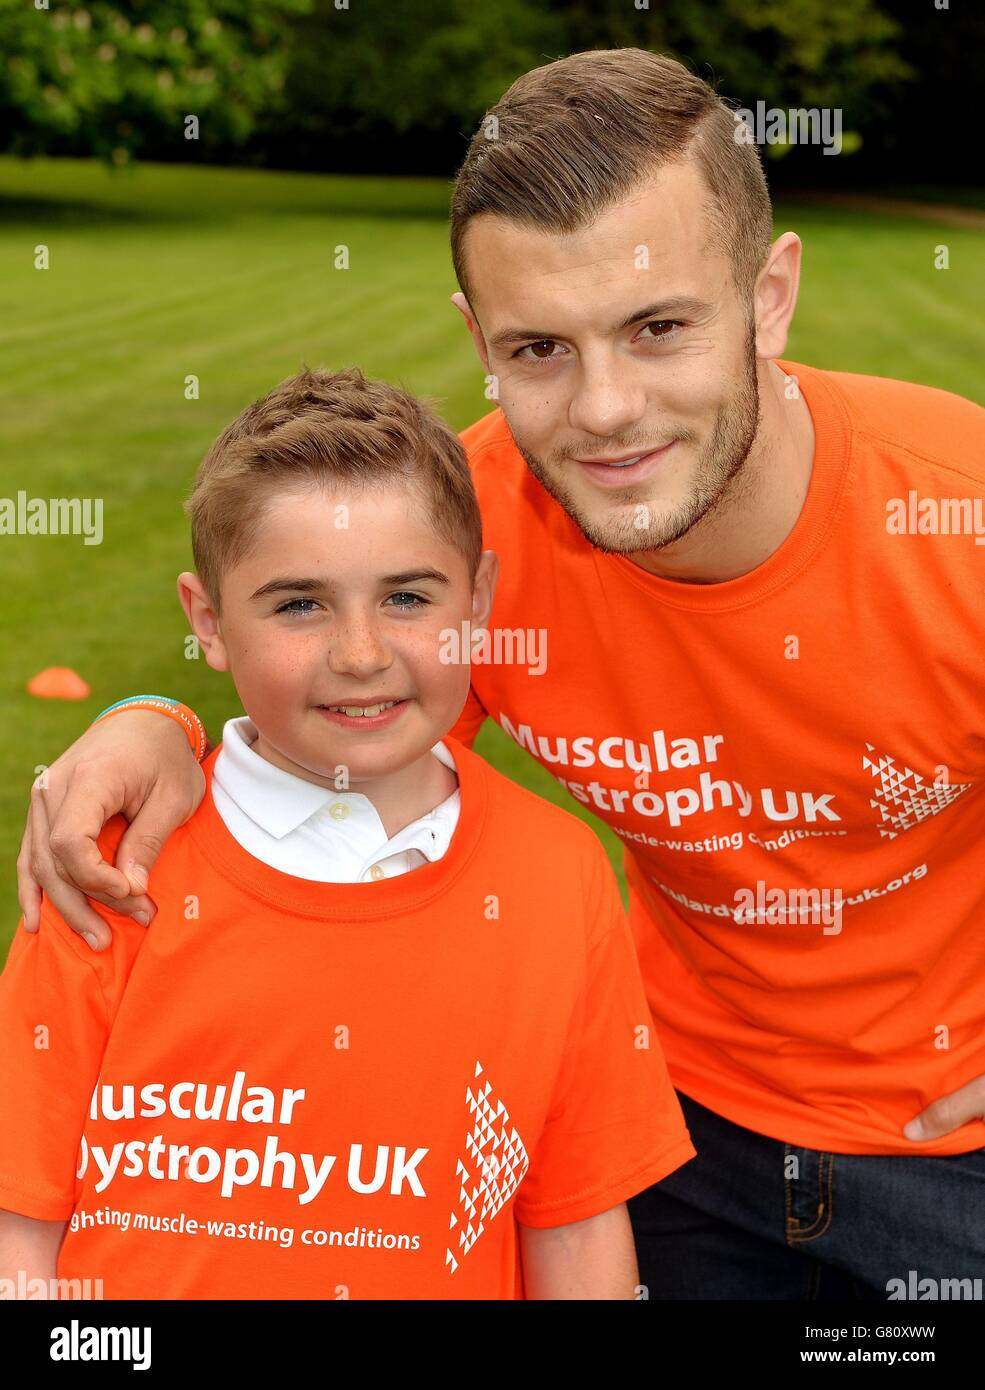 Jack Wilshere Muscular Dystrophy - Stock Image